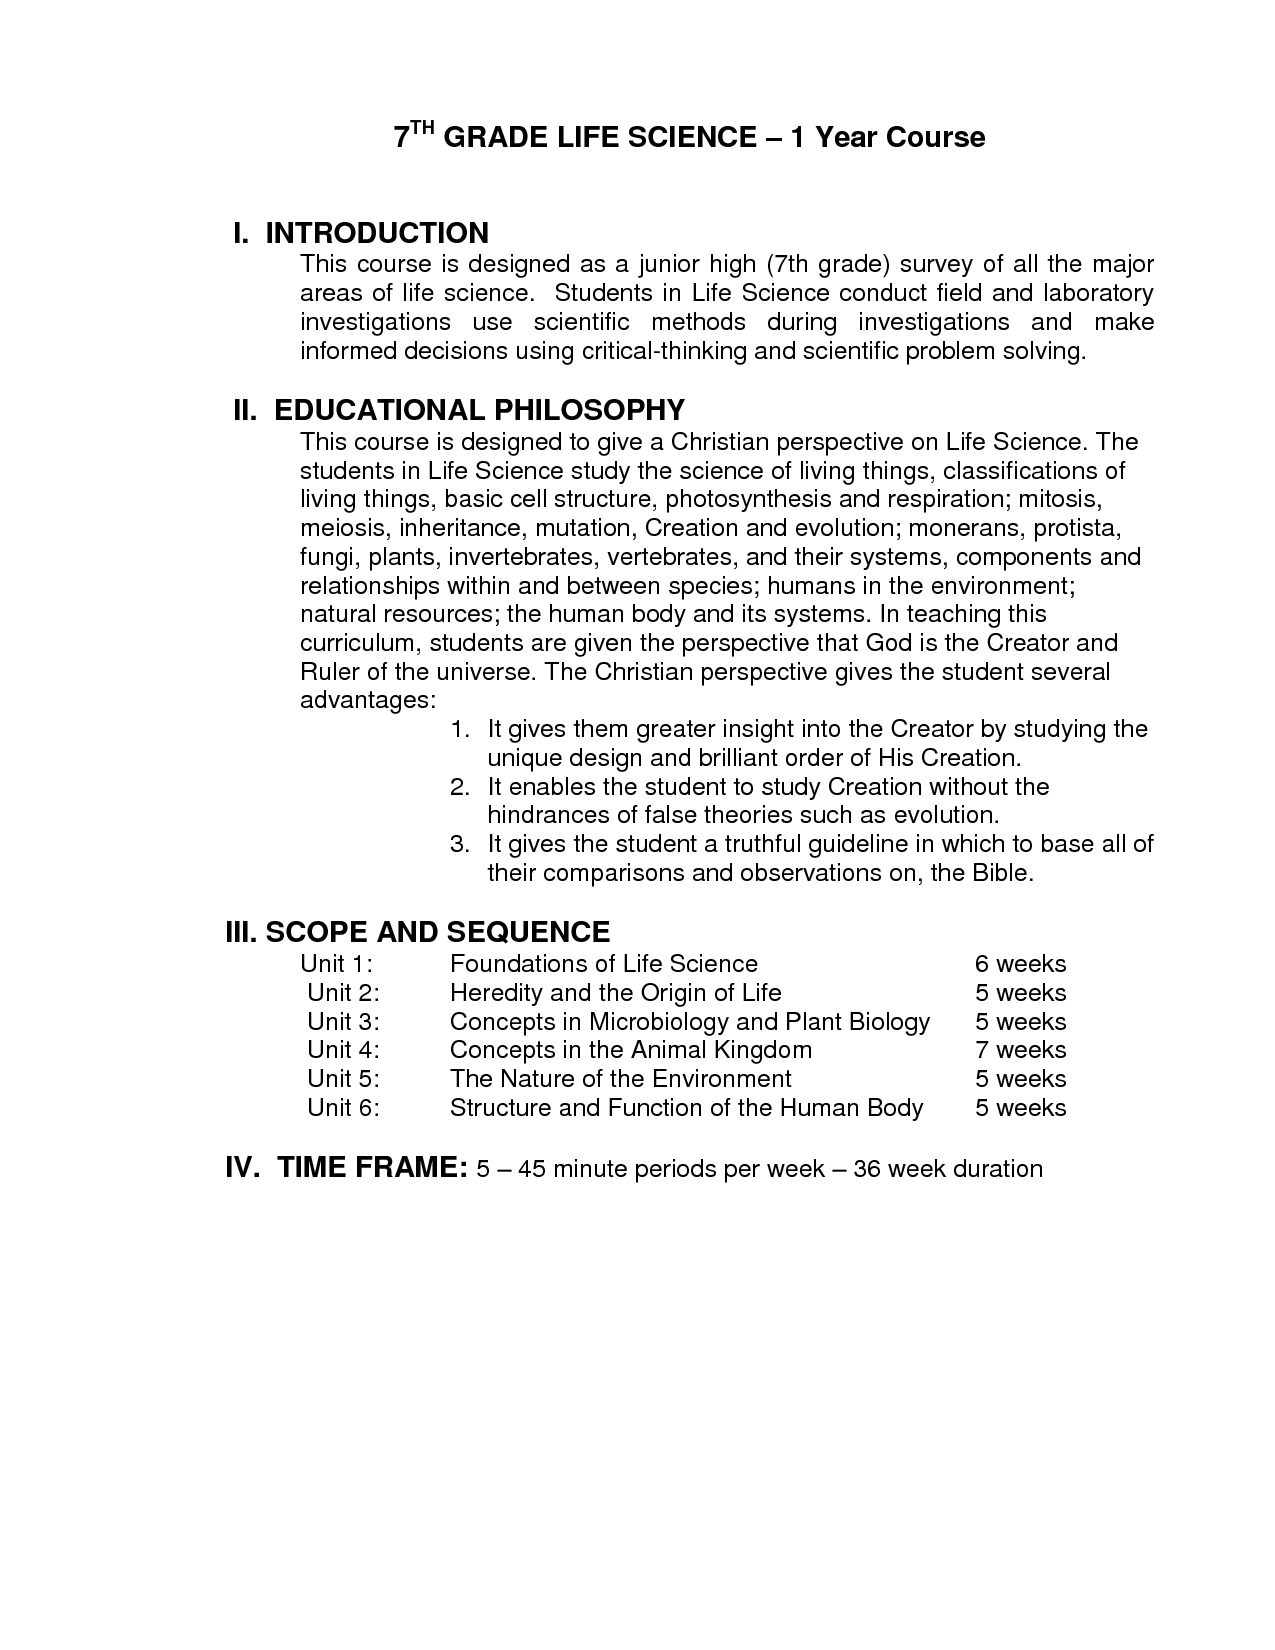 Critical thinking worksheets for 7th grade - Free Critical ...